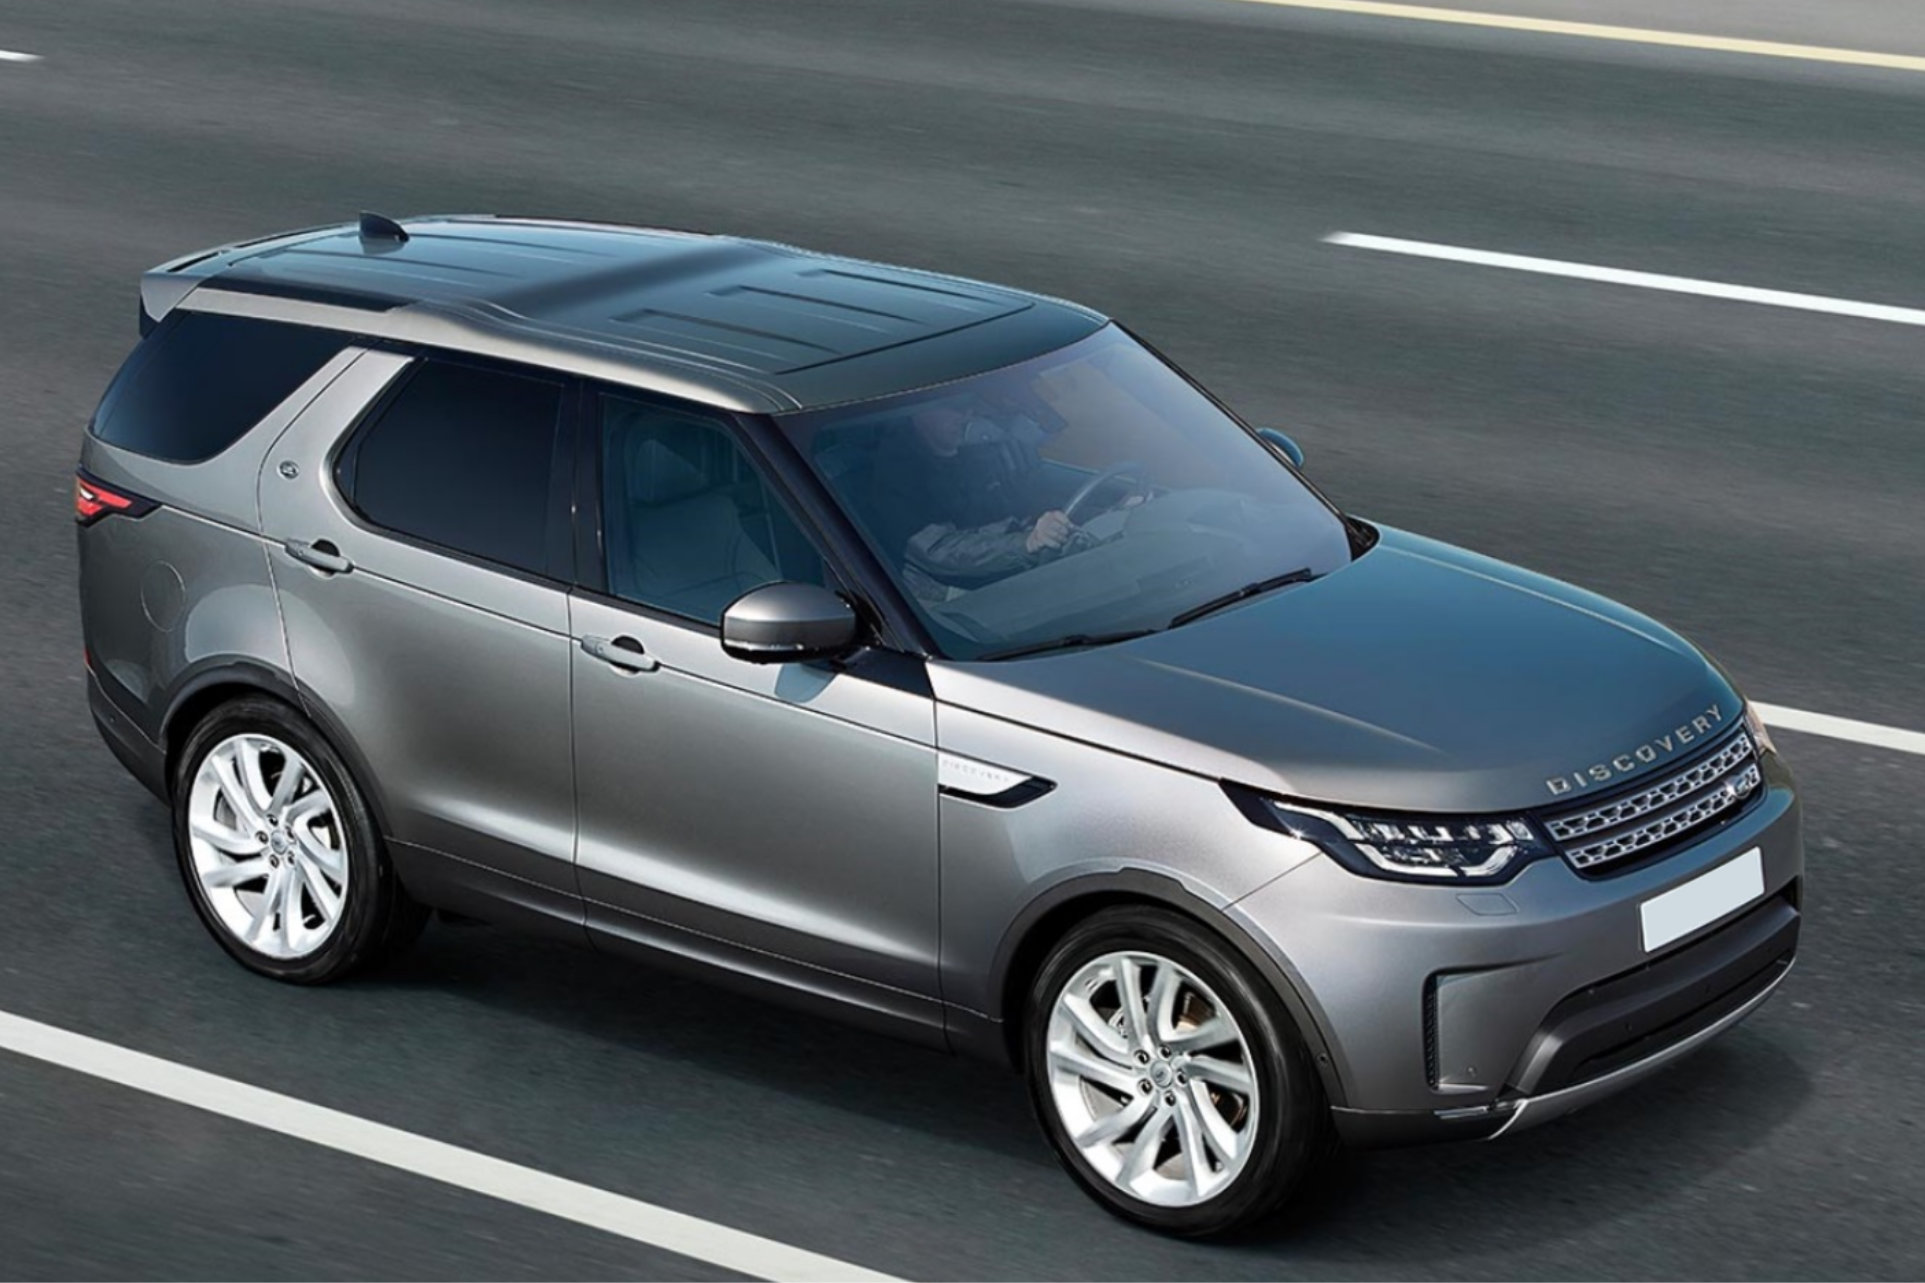 Land Rover Discovery Commercial AVSVehicles Finding The Right Gear For You Supercars Contract Hire Leasing Cardiff Wales